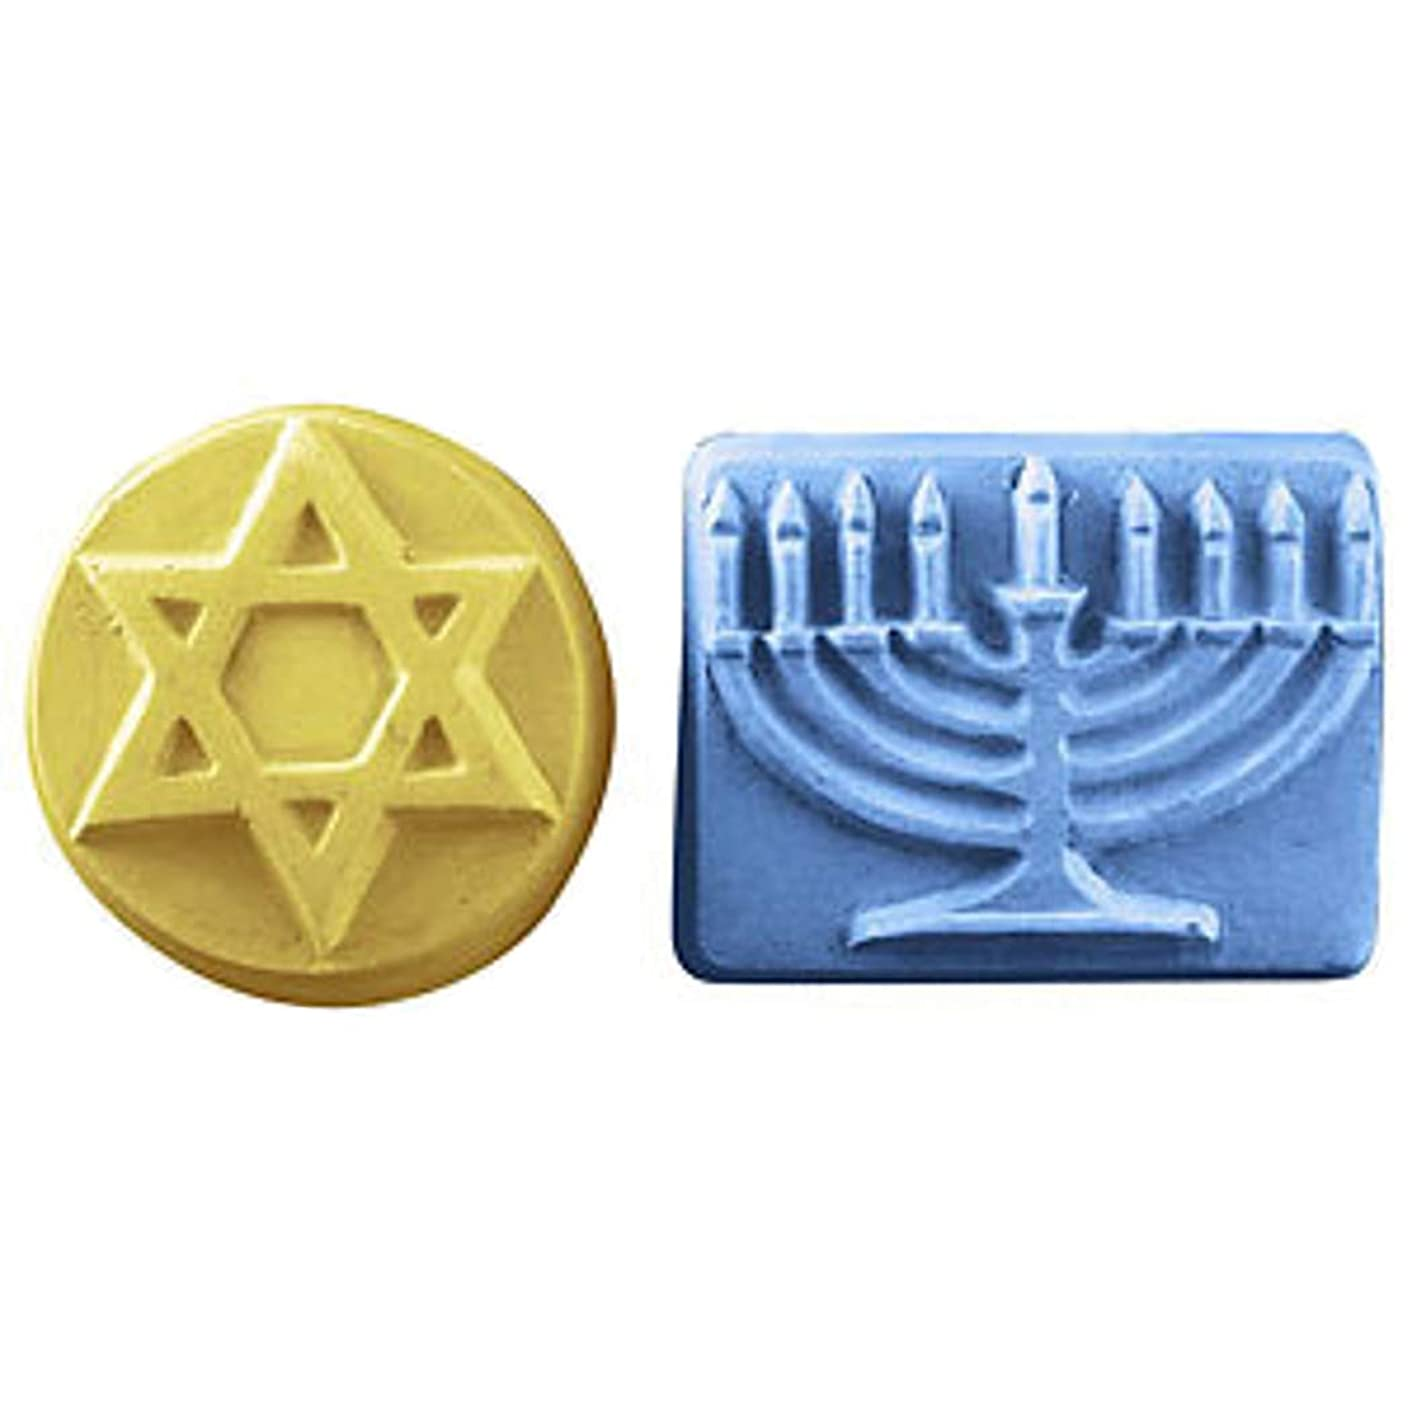 Milky Way Hanukkah Soap Mold Tray - Melt and Pour - Cold Process - Clear PVC - Not Silicone - MW 347